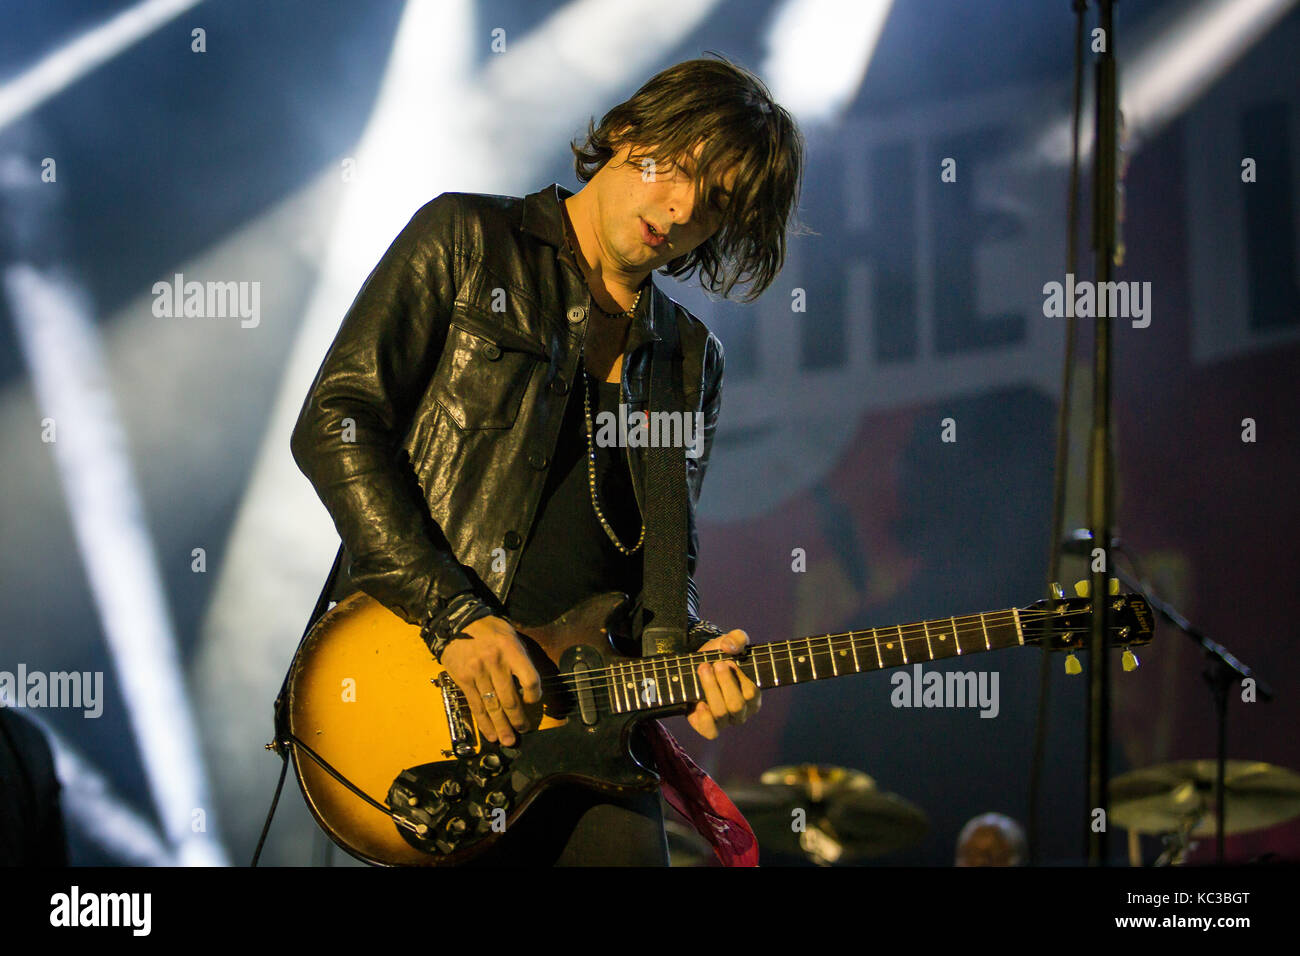 The English rock band The Libertines performs a live concert at the music festival Lollapalooza 2015 in Berlin. - Stock Image